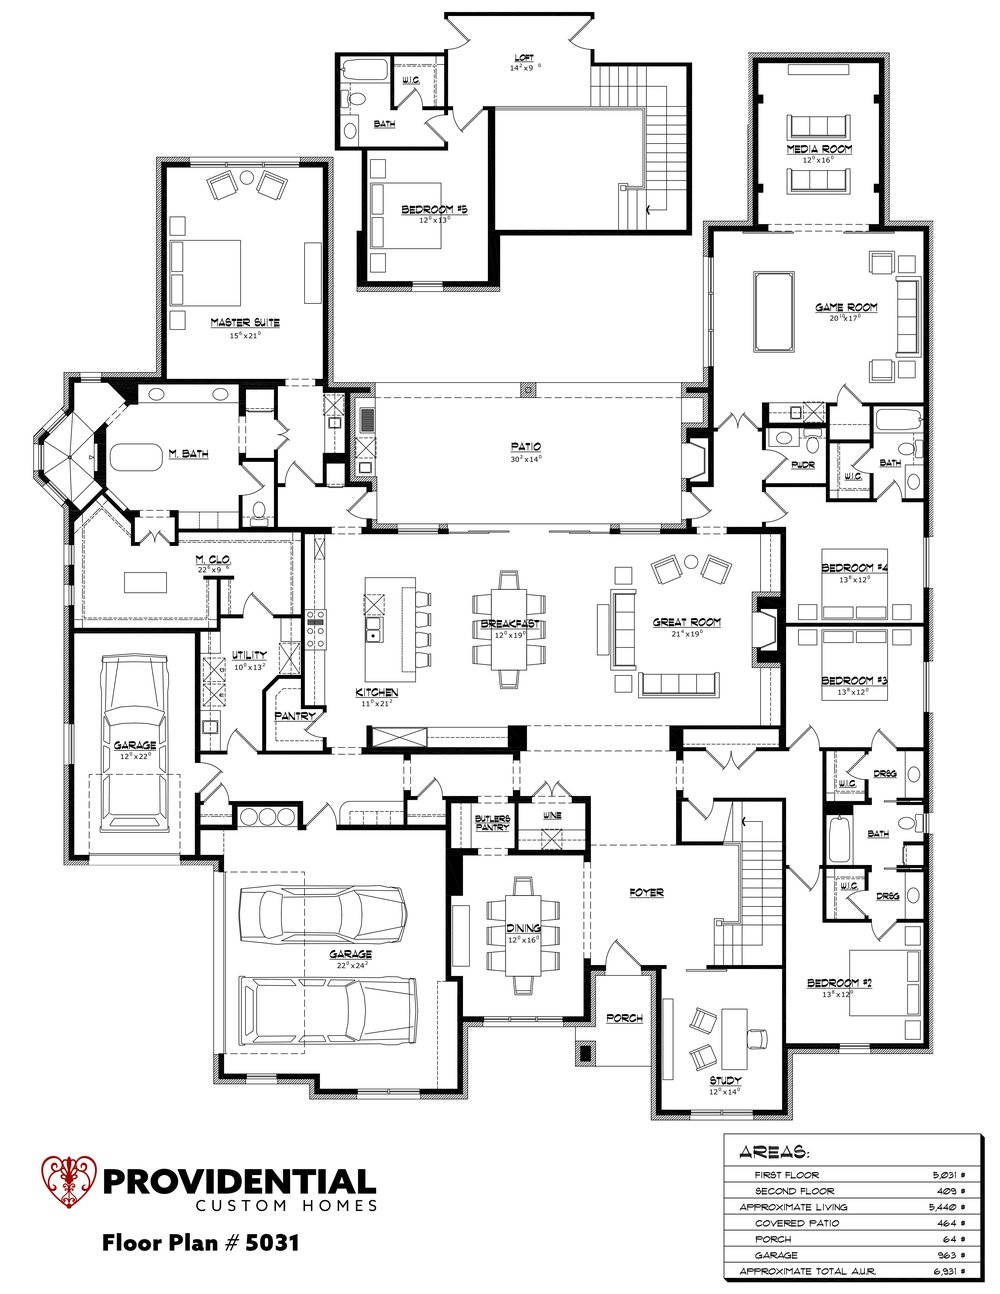 The FLOOR PLAN #5031.jpg